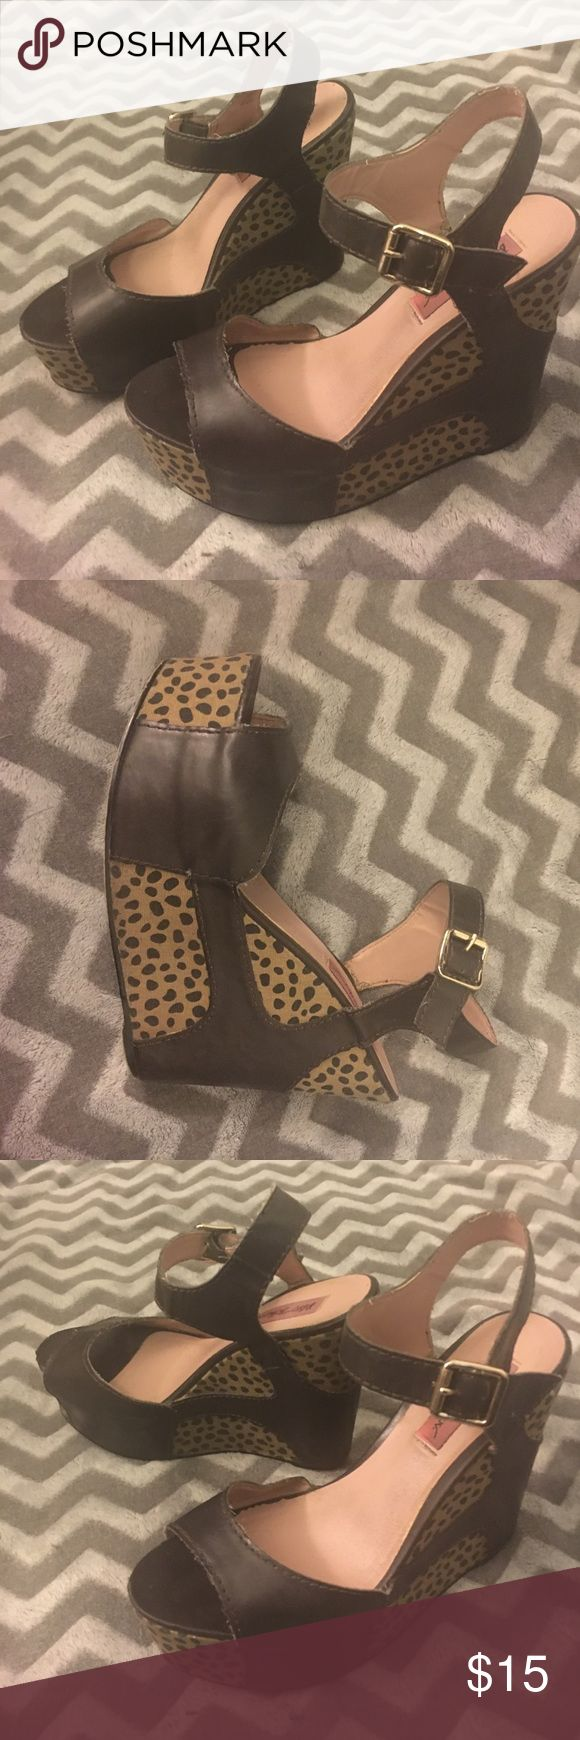 Betsey Johnson wedges, brown and tan Fun and playful neutral wedges! Betsey Johnson size 8.5 brown faux leather with a tan and black spotted print. Betsey Johnson Shoes Wedges